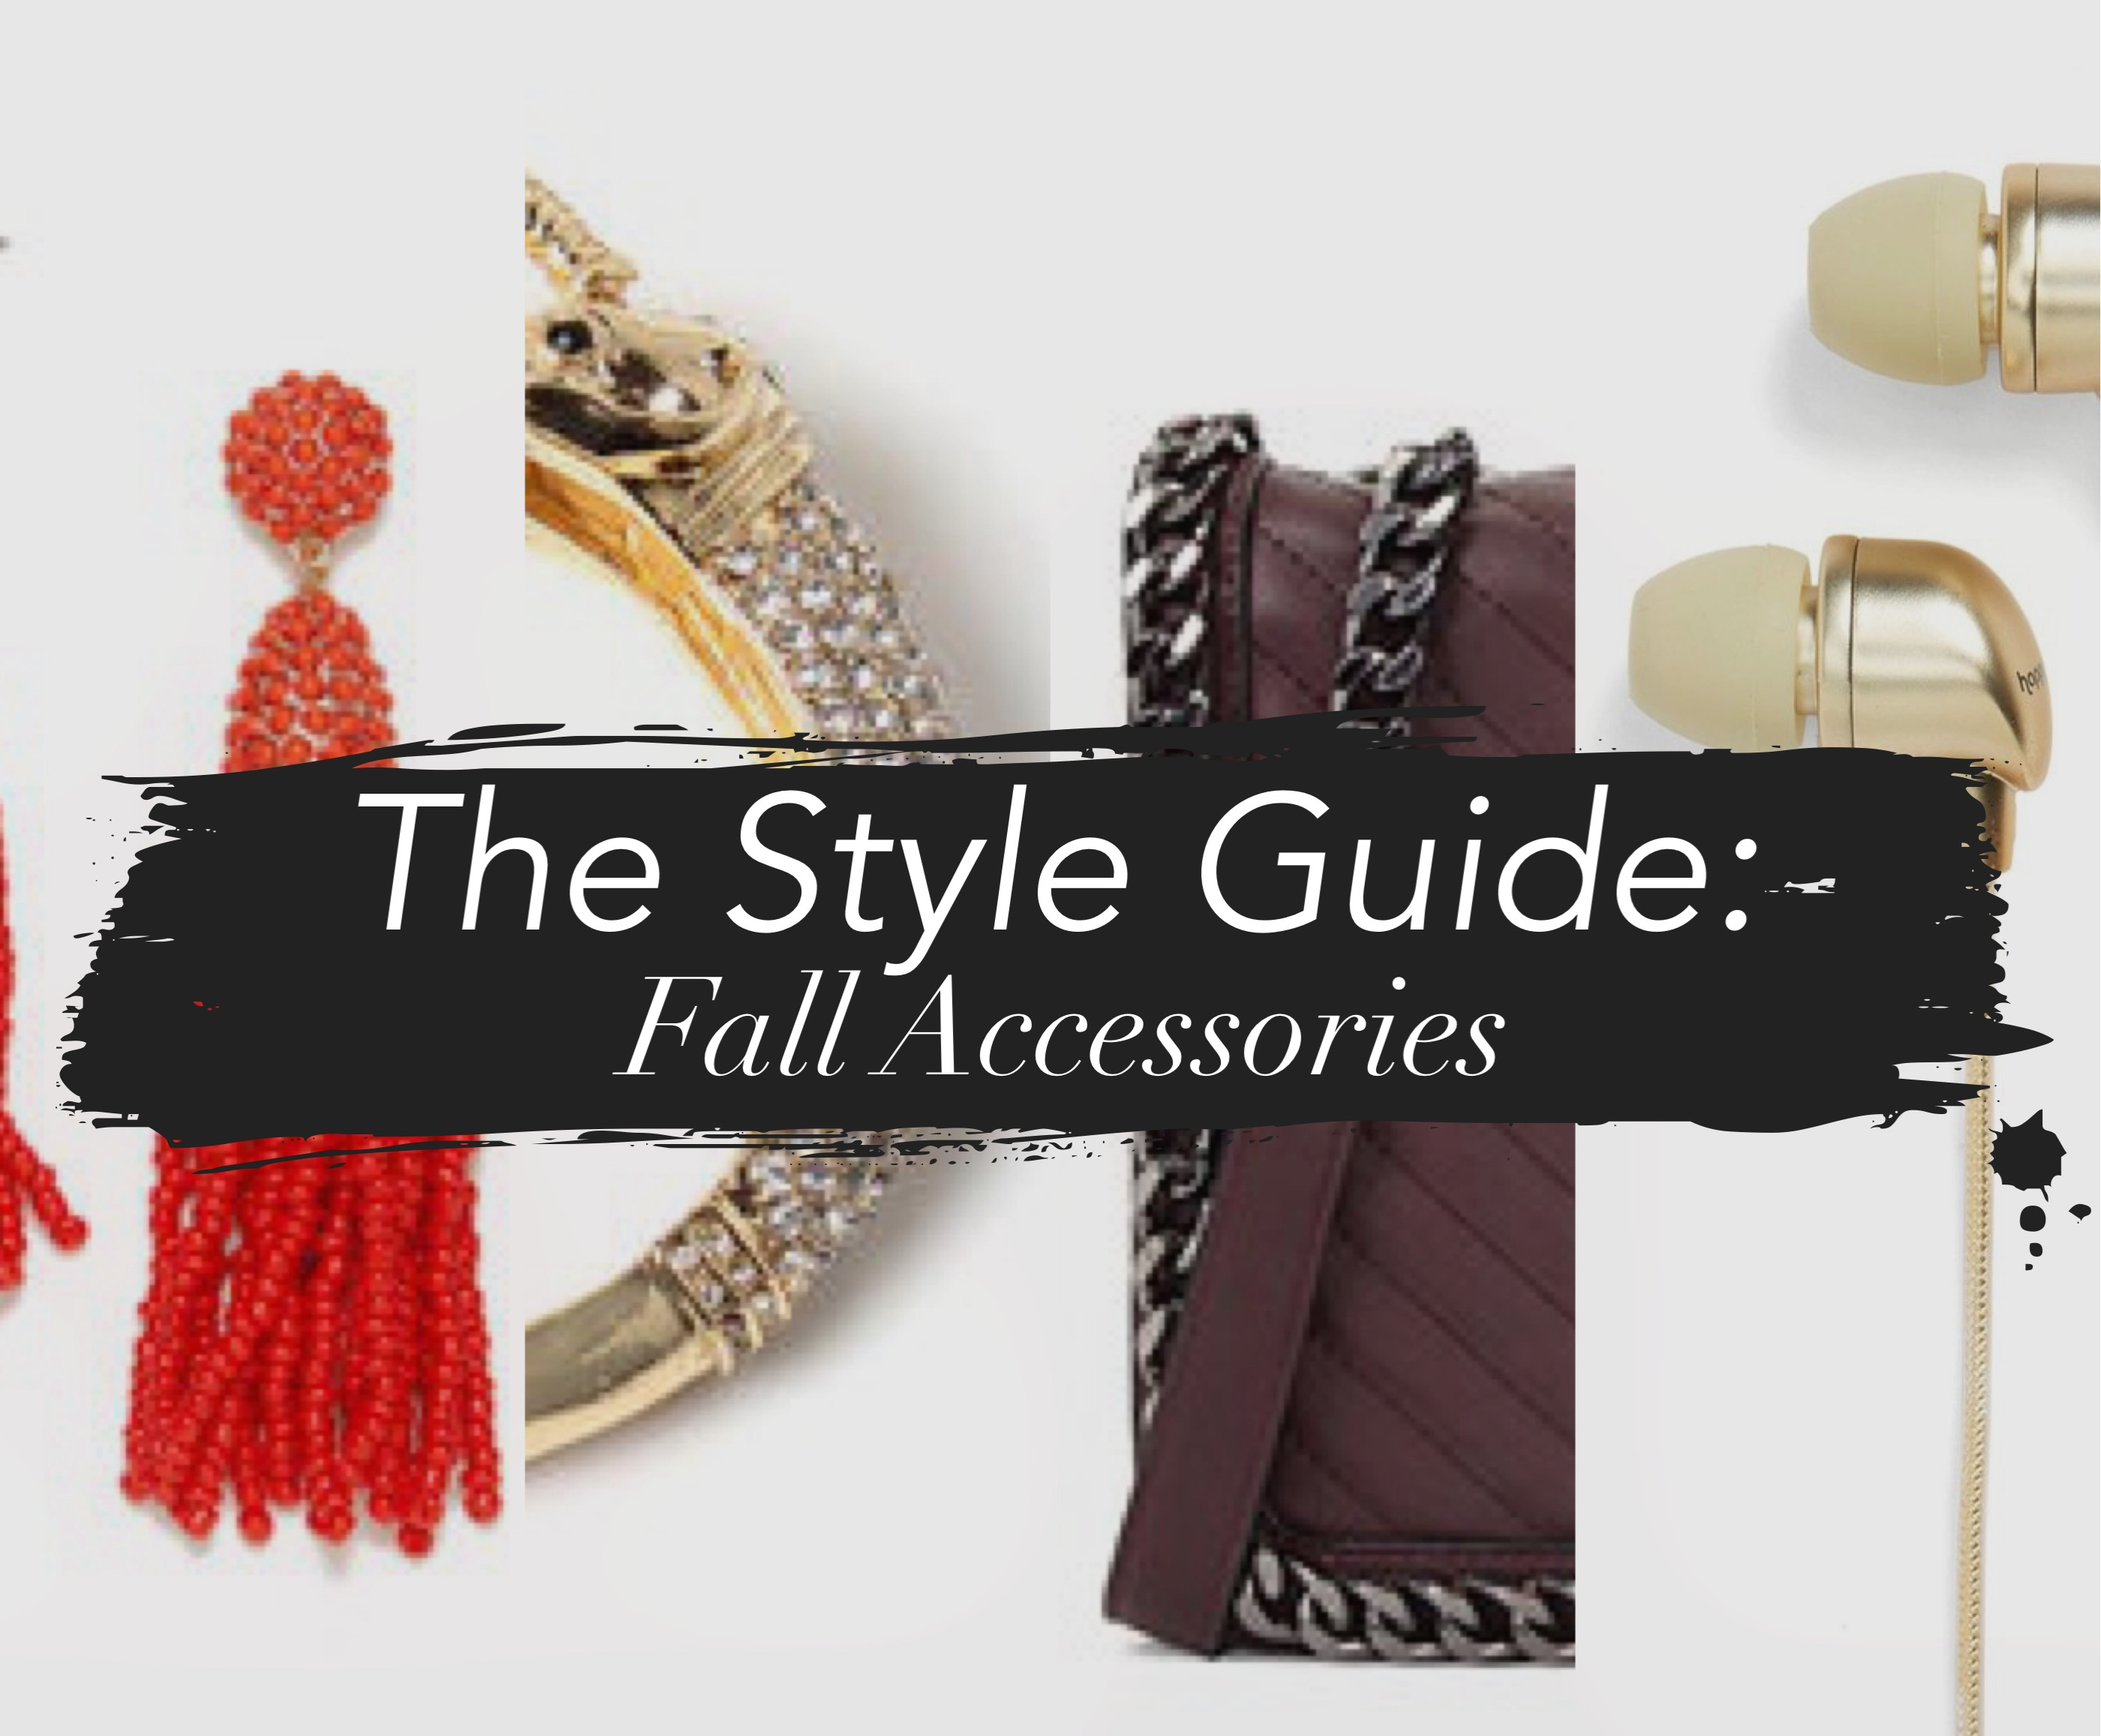 Best Fall accessories to buy, fall shopping guide, christmas gift shopping guide, norsdtrom gift shopping guide, amrita sigh, aldo bags, baublebar